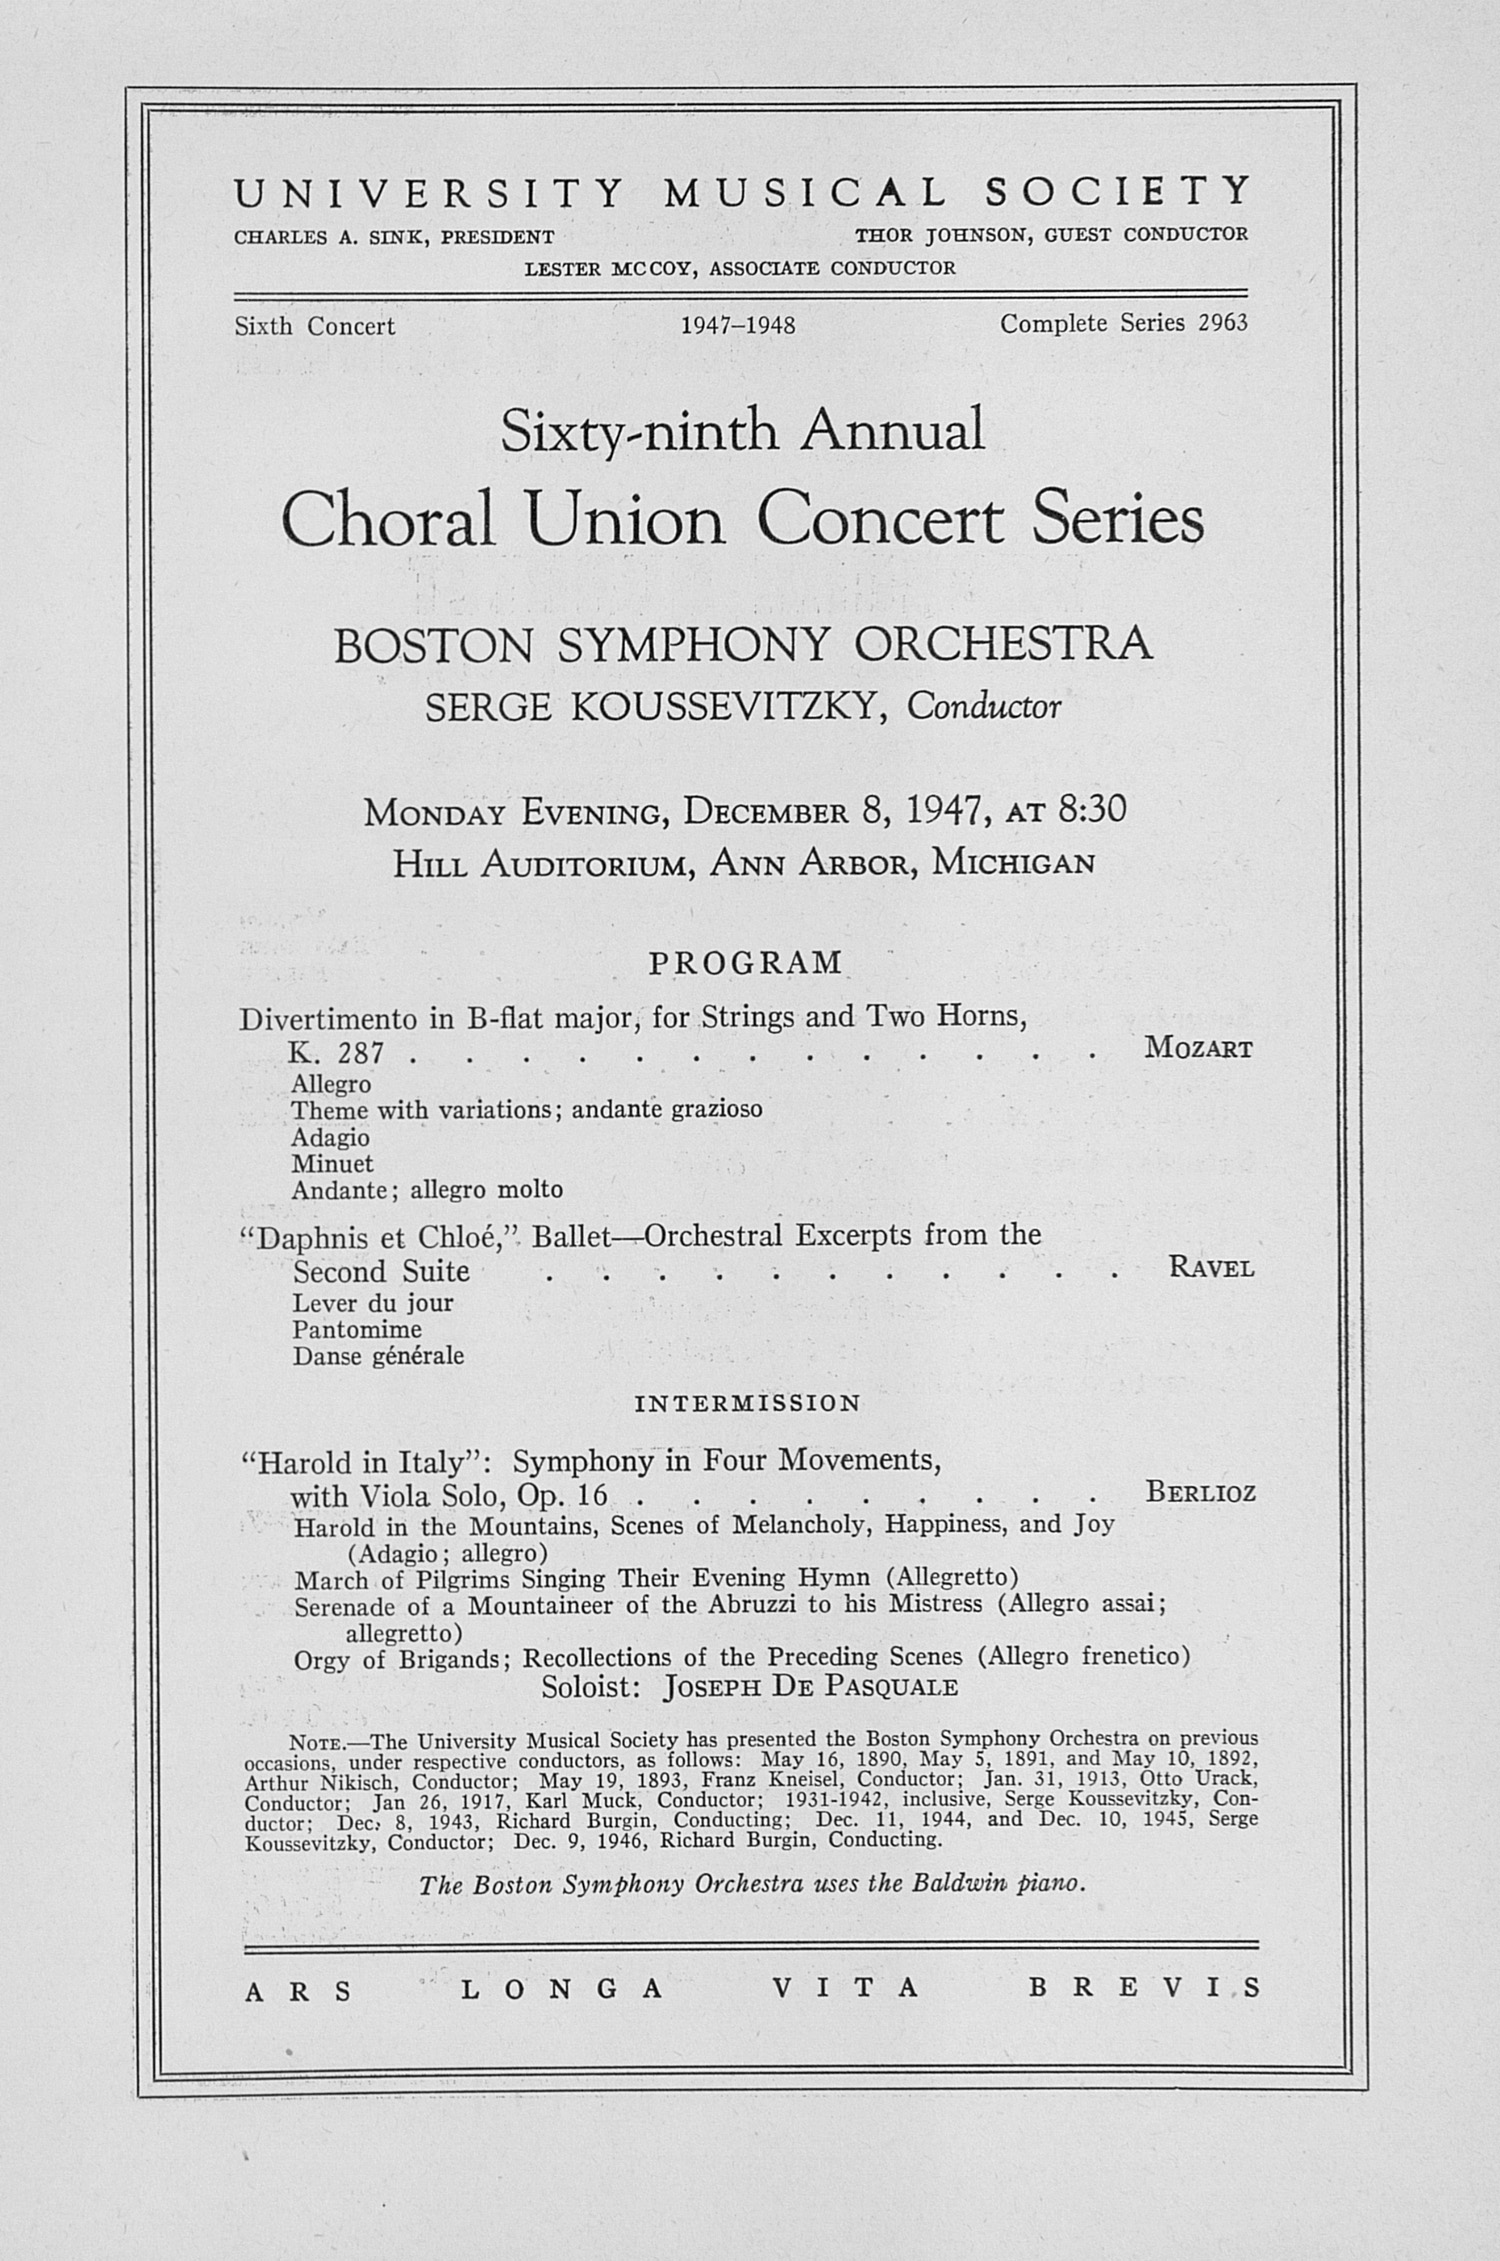 UMS Concert Program, December 8, 1947: Sixty-ninth Annual Choral Union Concert Series -- Boston Symphony Orchestra image